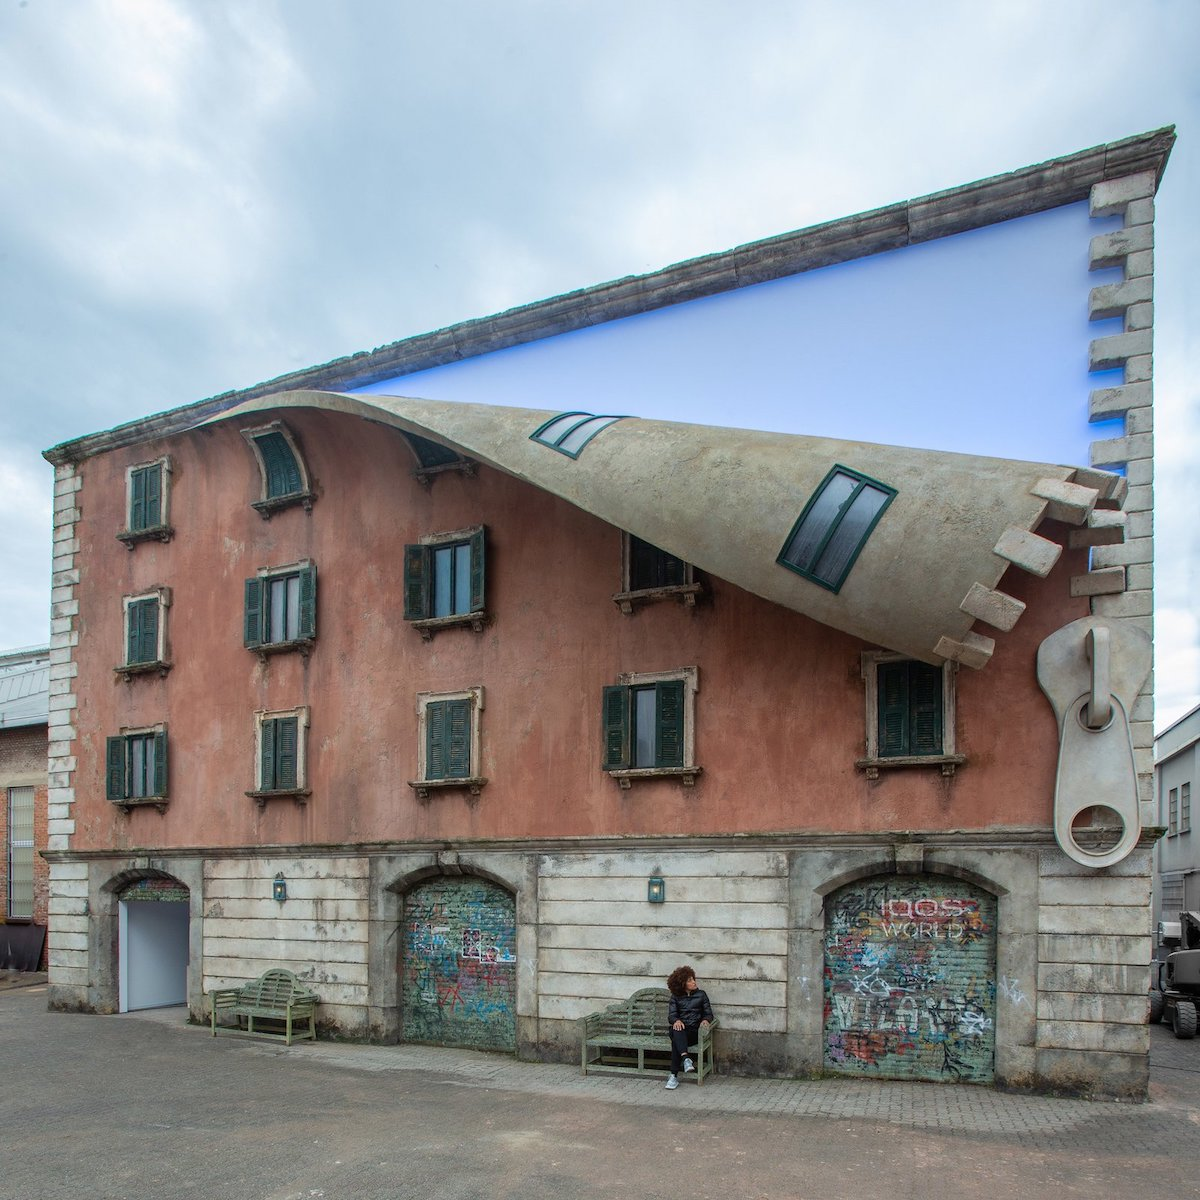 Alex Chinneck Sculpture in Milan